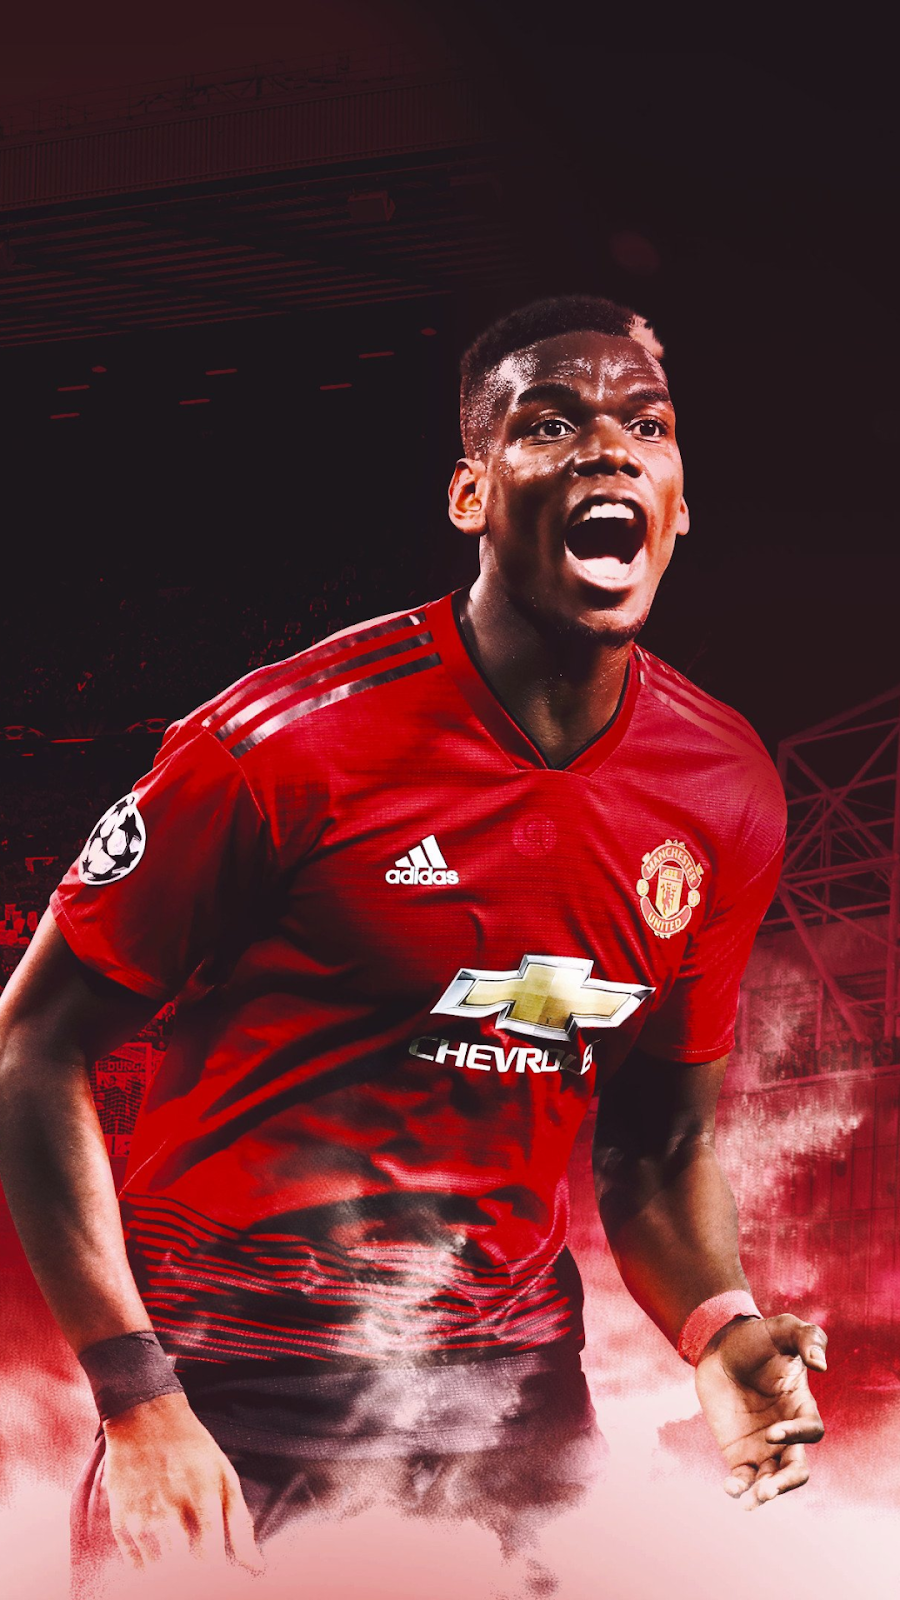 Paul Pogba Mobile Wallpaper